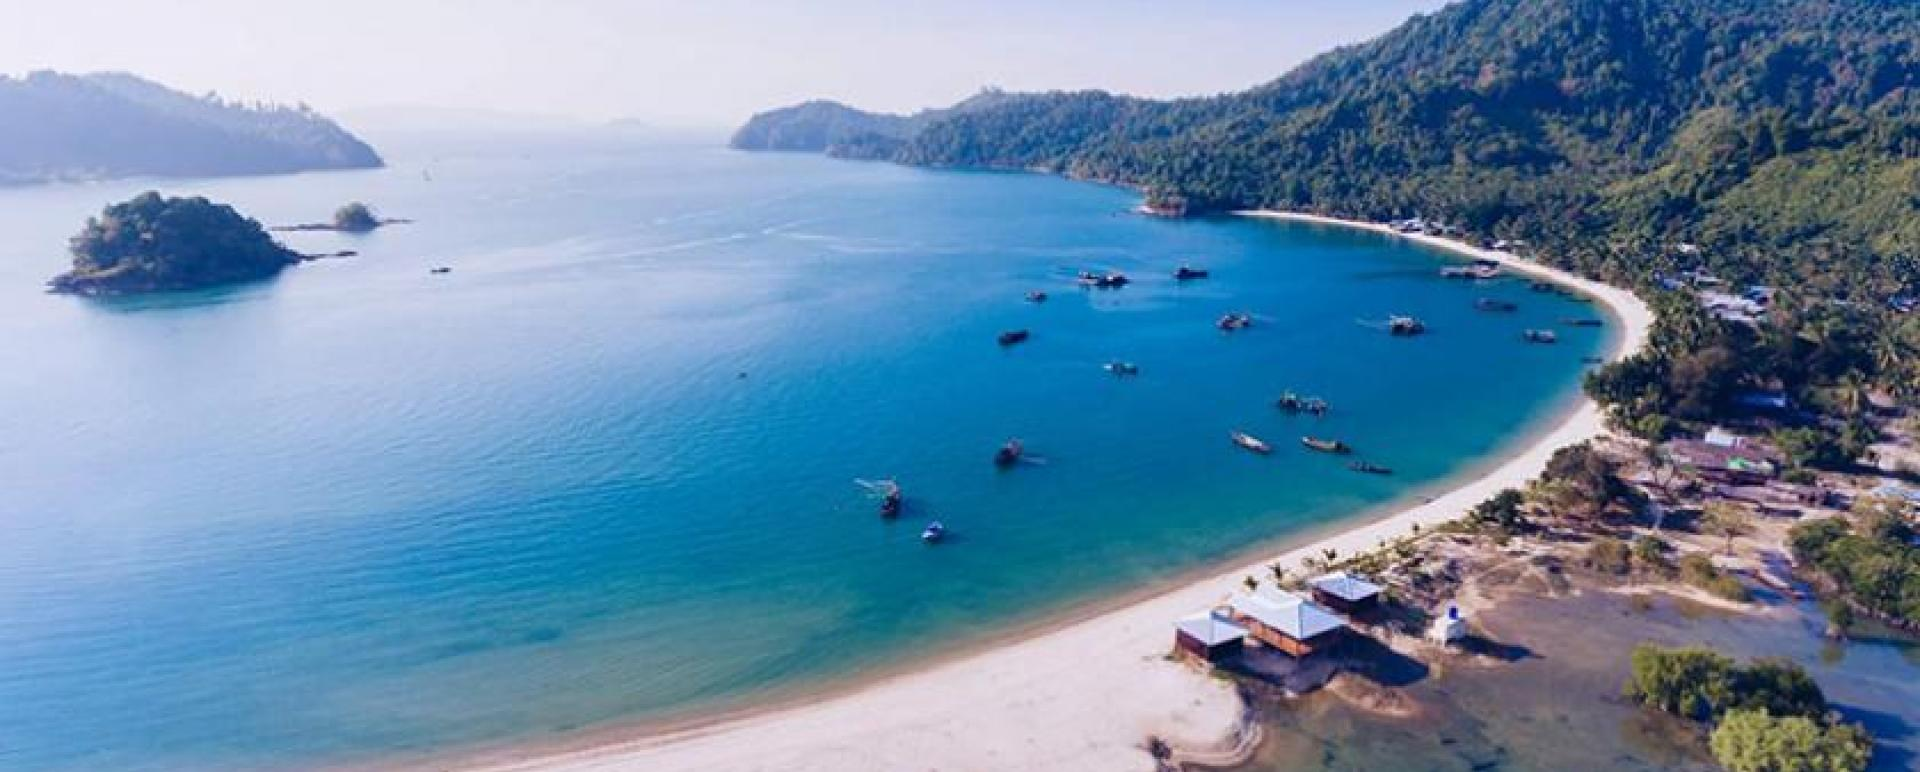 The first Myanmar's community-based tourism (CBT) island opened at Don Nyaung Hmaing village in Kyunsu Township, Tanintharyi Region